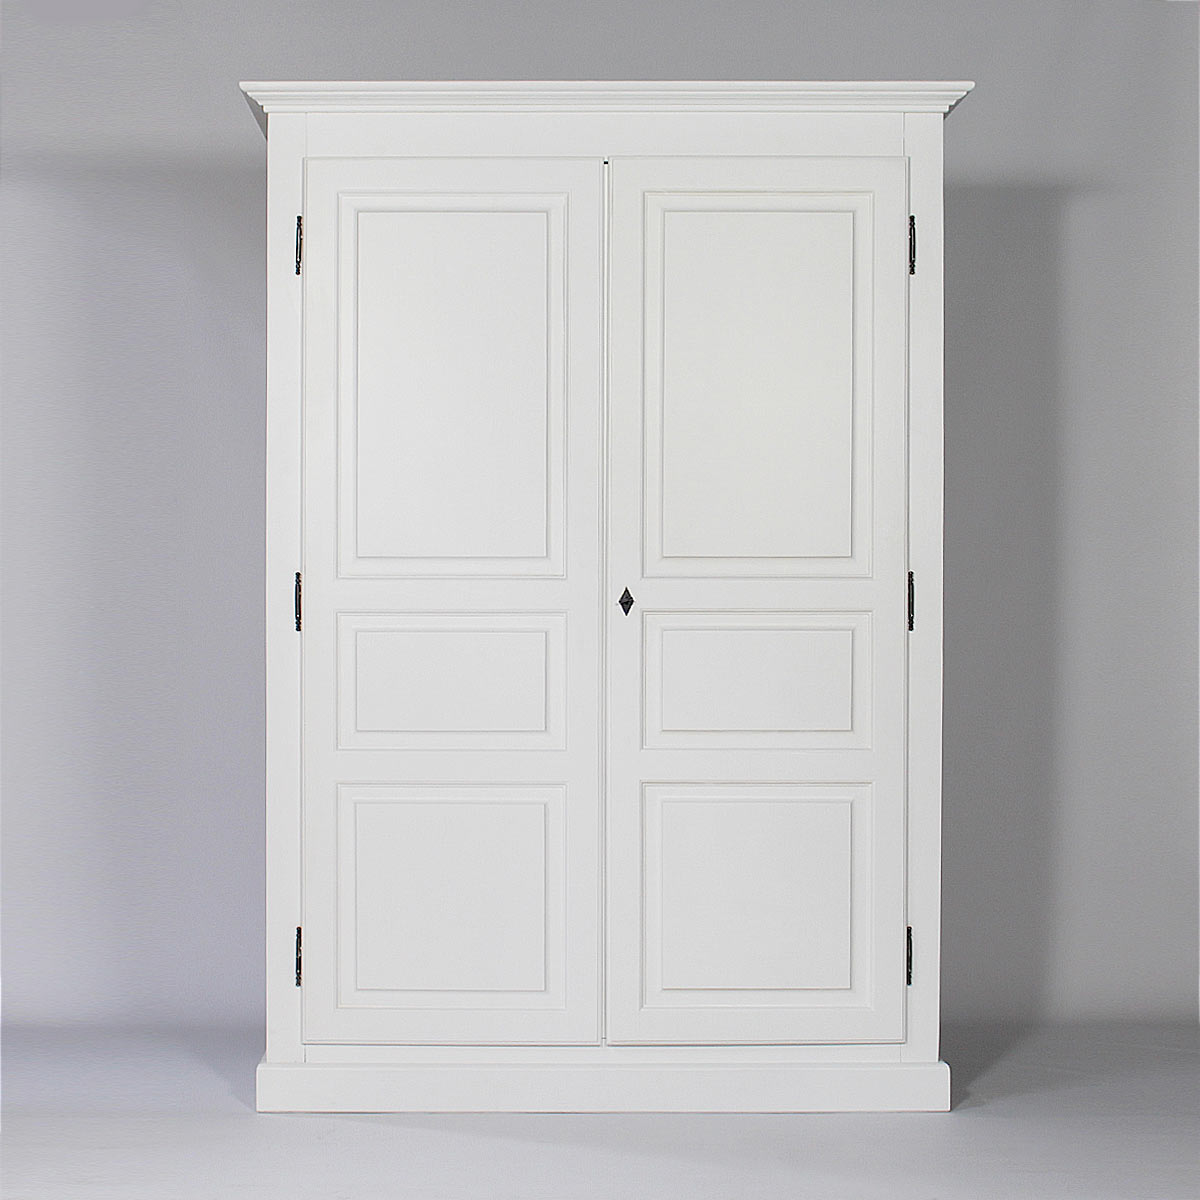 armoire bois massif blanche 2 portes 1 penderie made in meubles. Black Bedroom Furniture Sets. Home Design Ideas